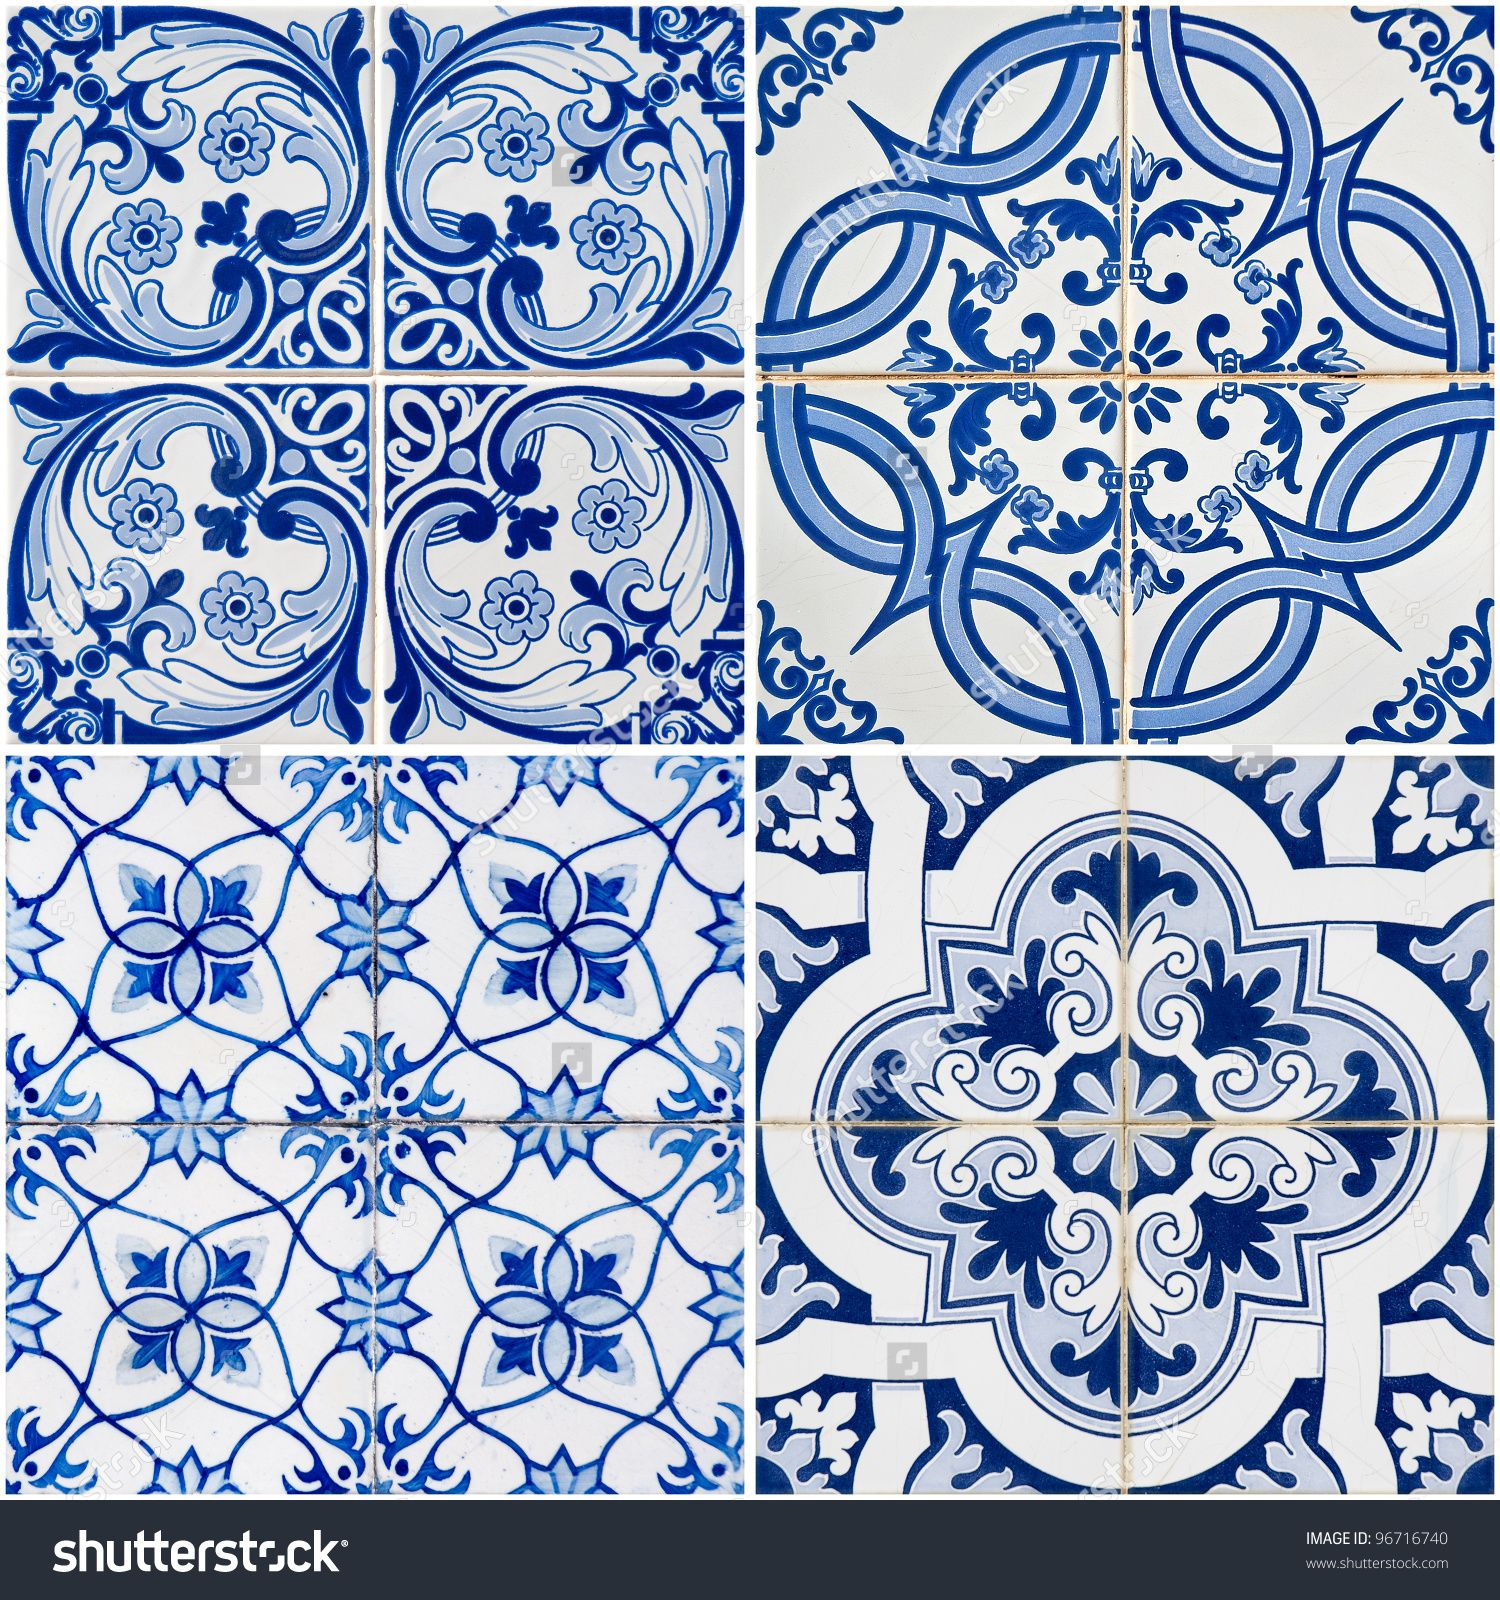 stock-photo-colorful-vintage-ceramic-tiles-wall-decoration-96716740 ...